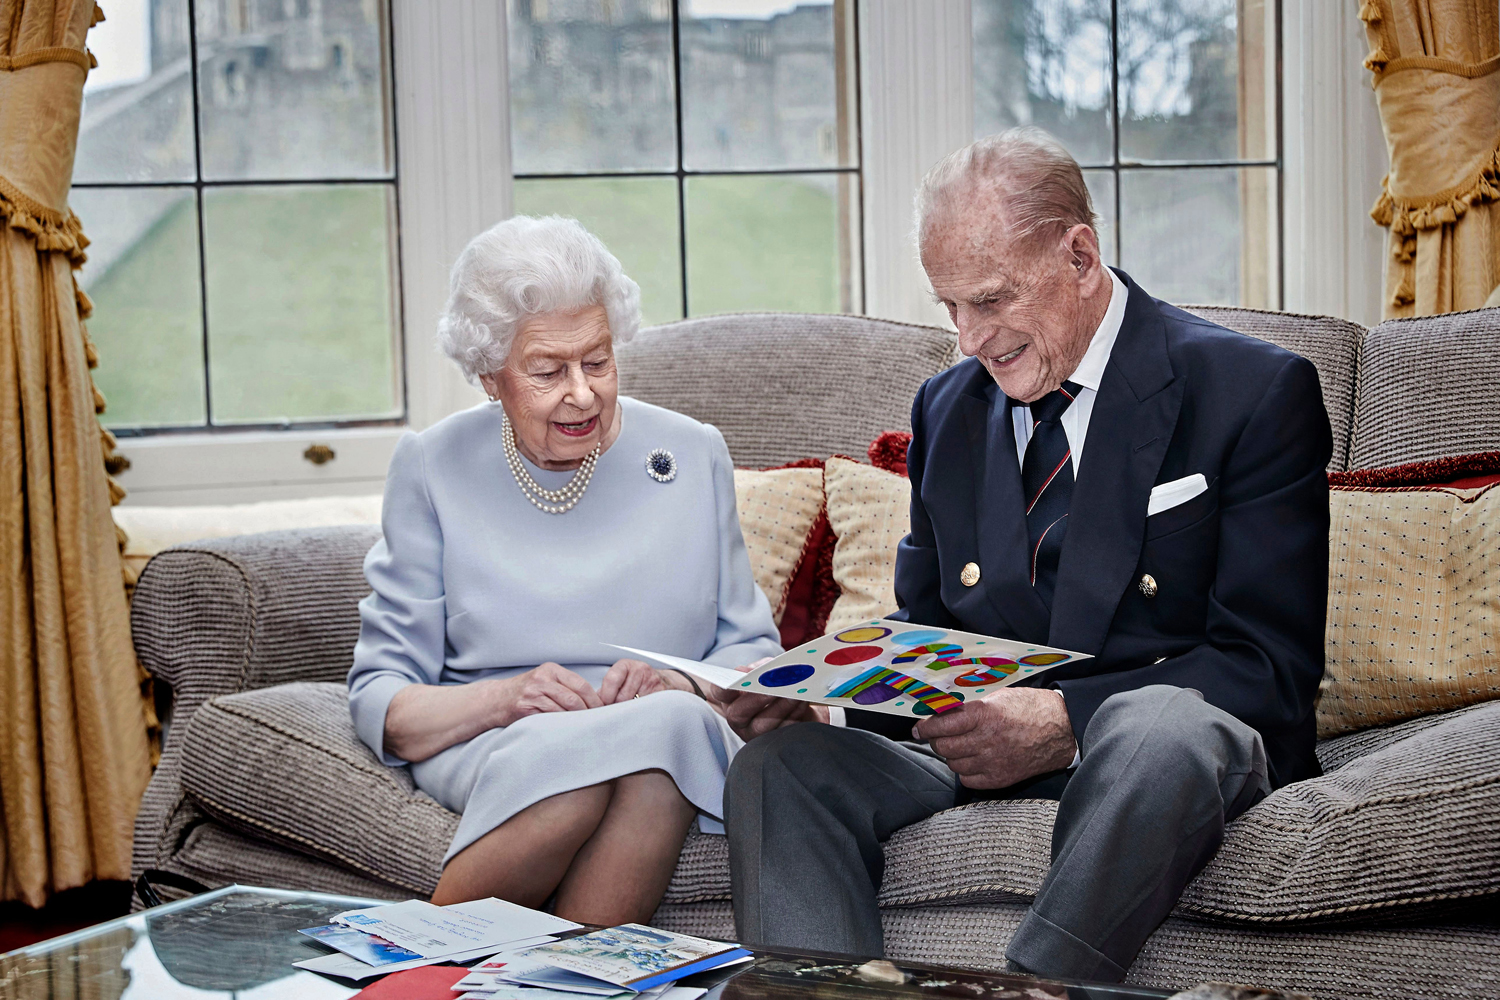 Queen Elizabeth and Prince Philip Duke Of Edinburgh 73rd Wedding Anniversary Official Portrait in Windsor, United Kingdom holding a homemade card